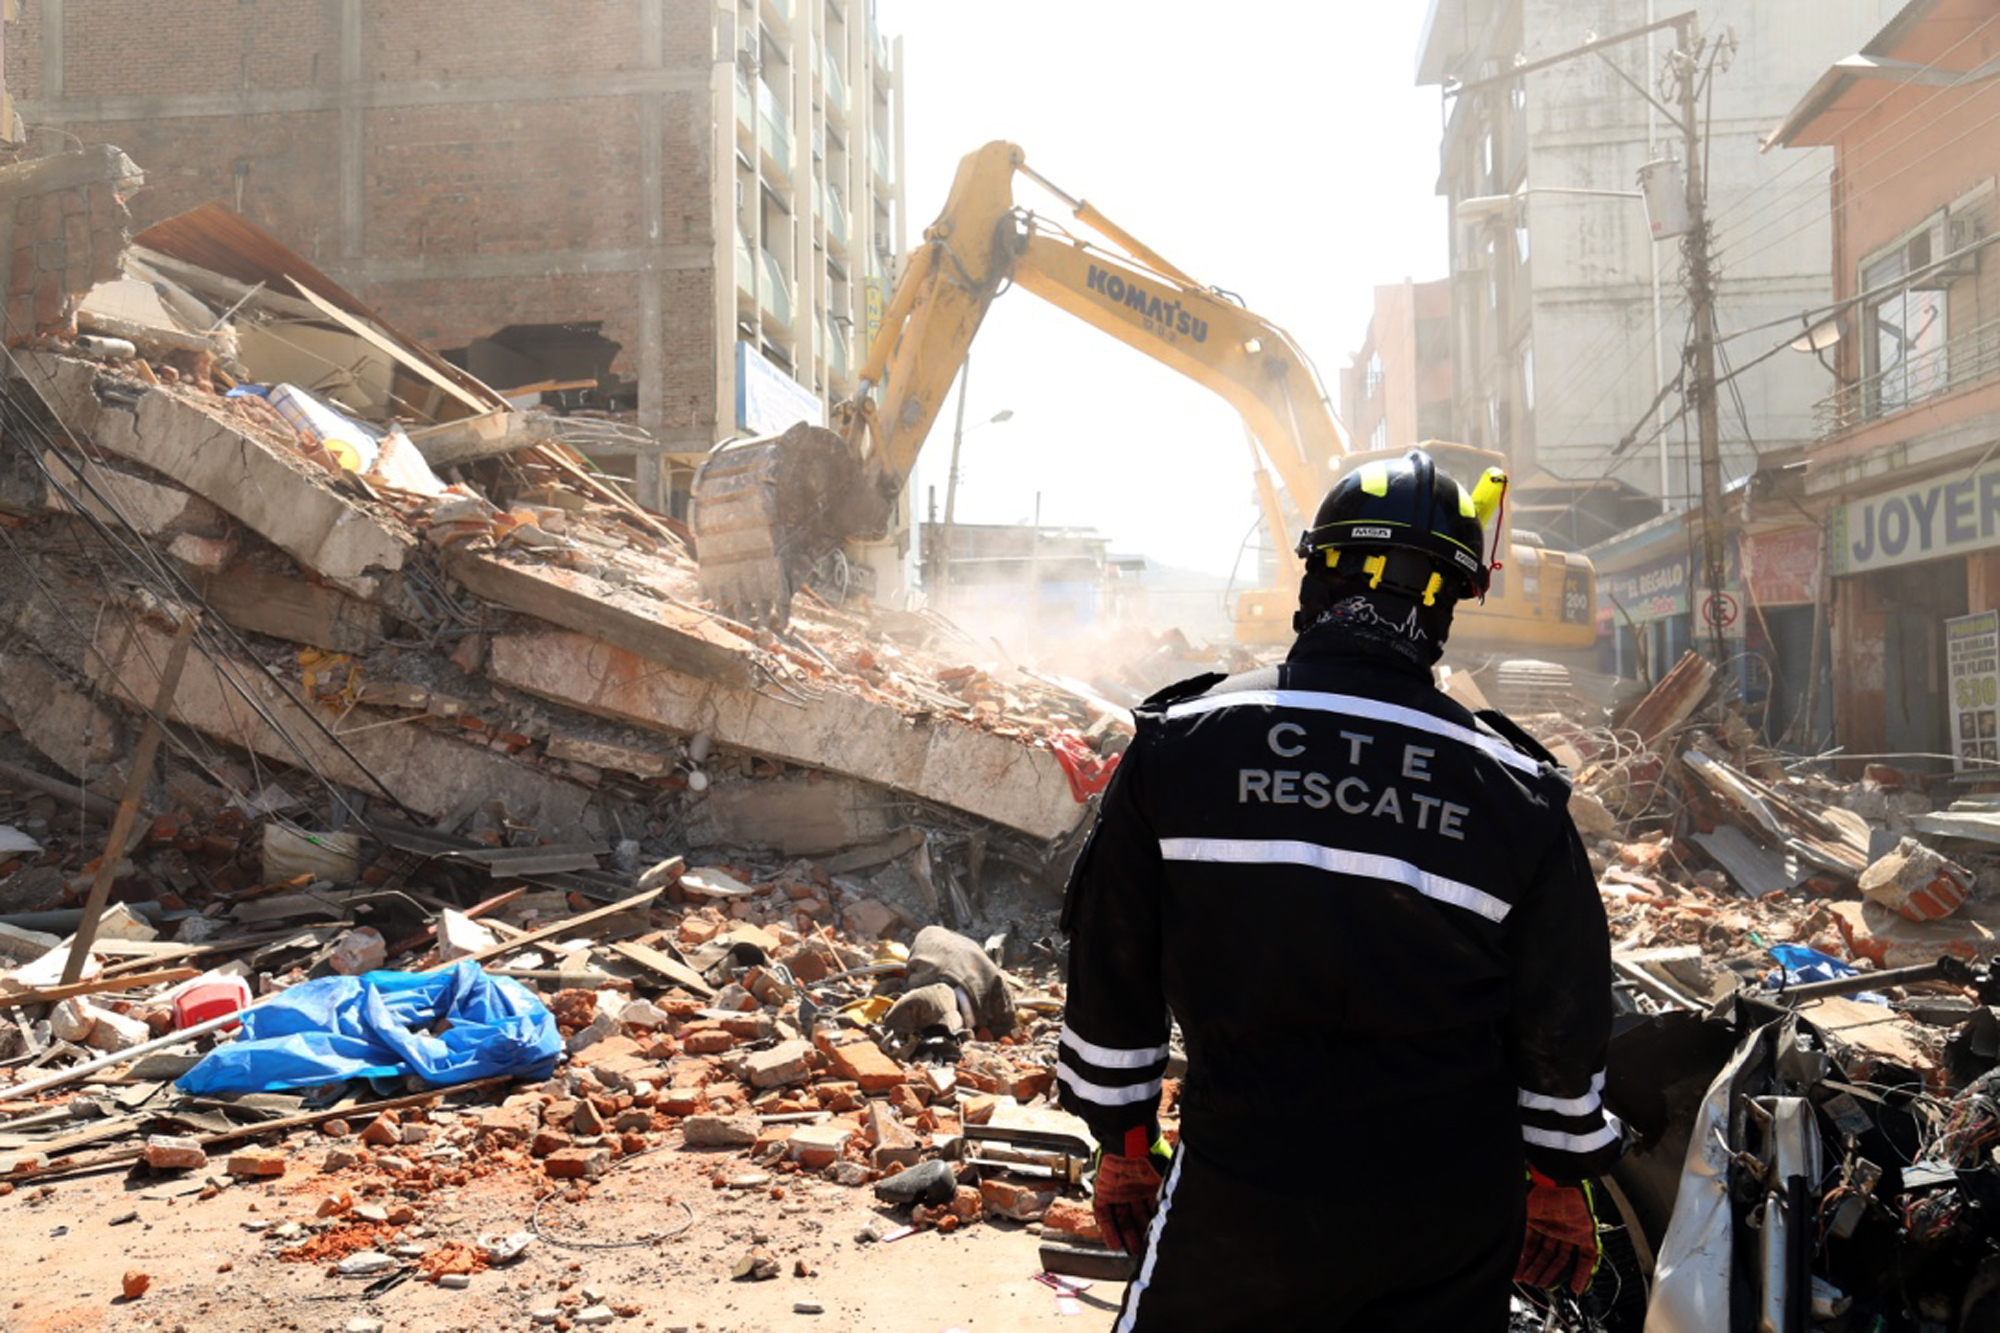 A rescue worker looks as heavy machinery removes the debris of a collapsed building in Portoviejo, Ecuador, Sunday April 17, 2016. A magnitude-7.8 quake, the strongest since 1979, hit Ecuador flattening buildings, buckling highways along its Pacific coast and killing hundreds. (AP Photo/Carlos Sacoto)